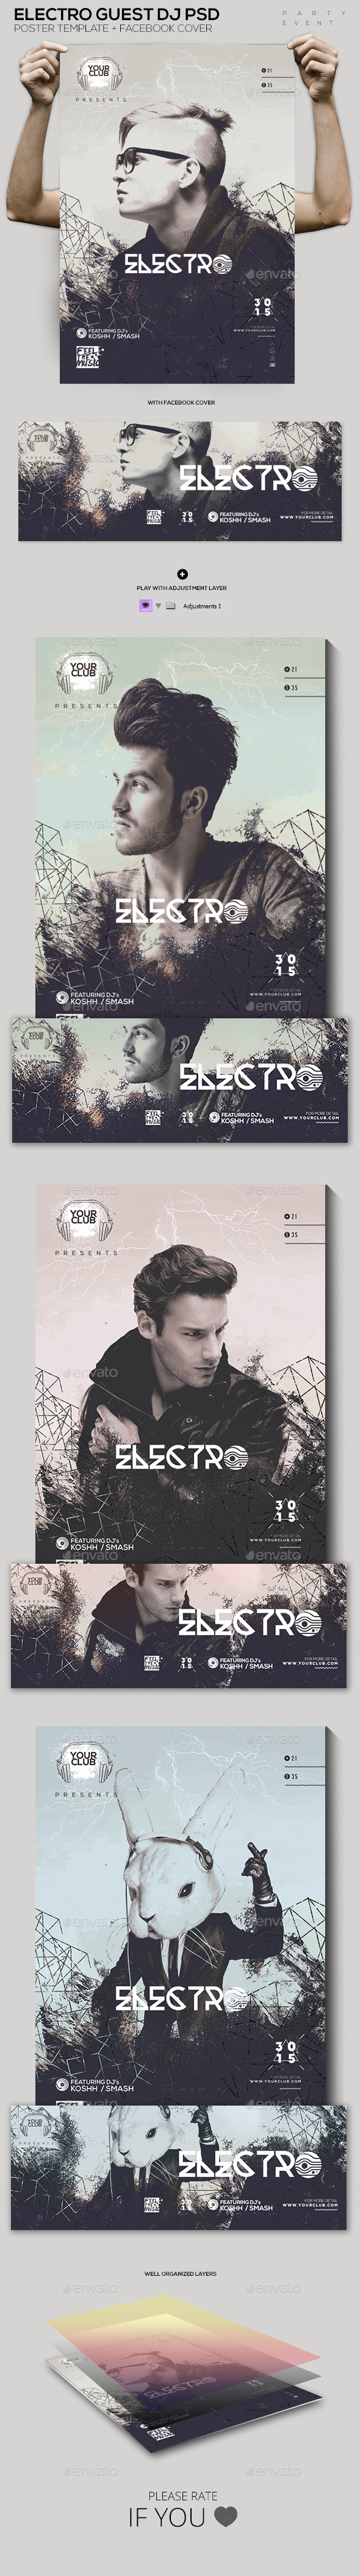 Electro Guest DJ PSD Template - Clubs & Parties Events